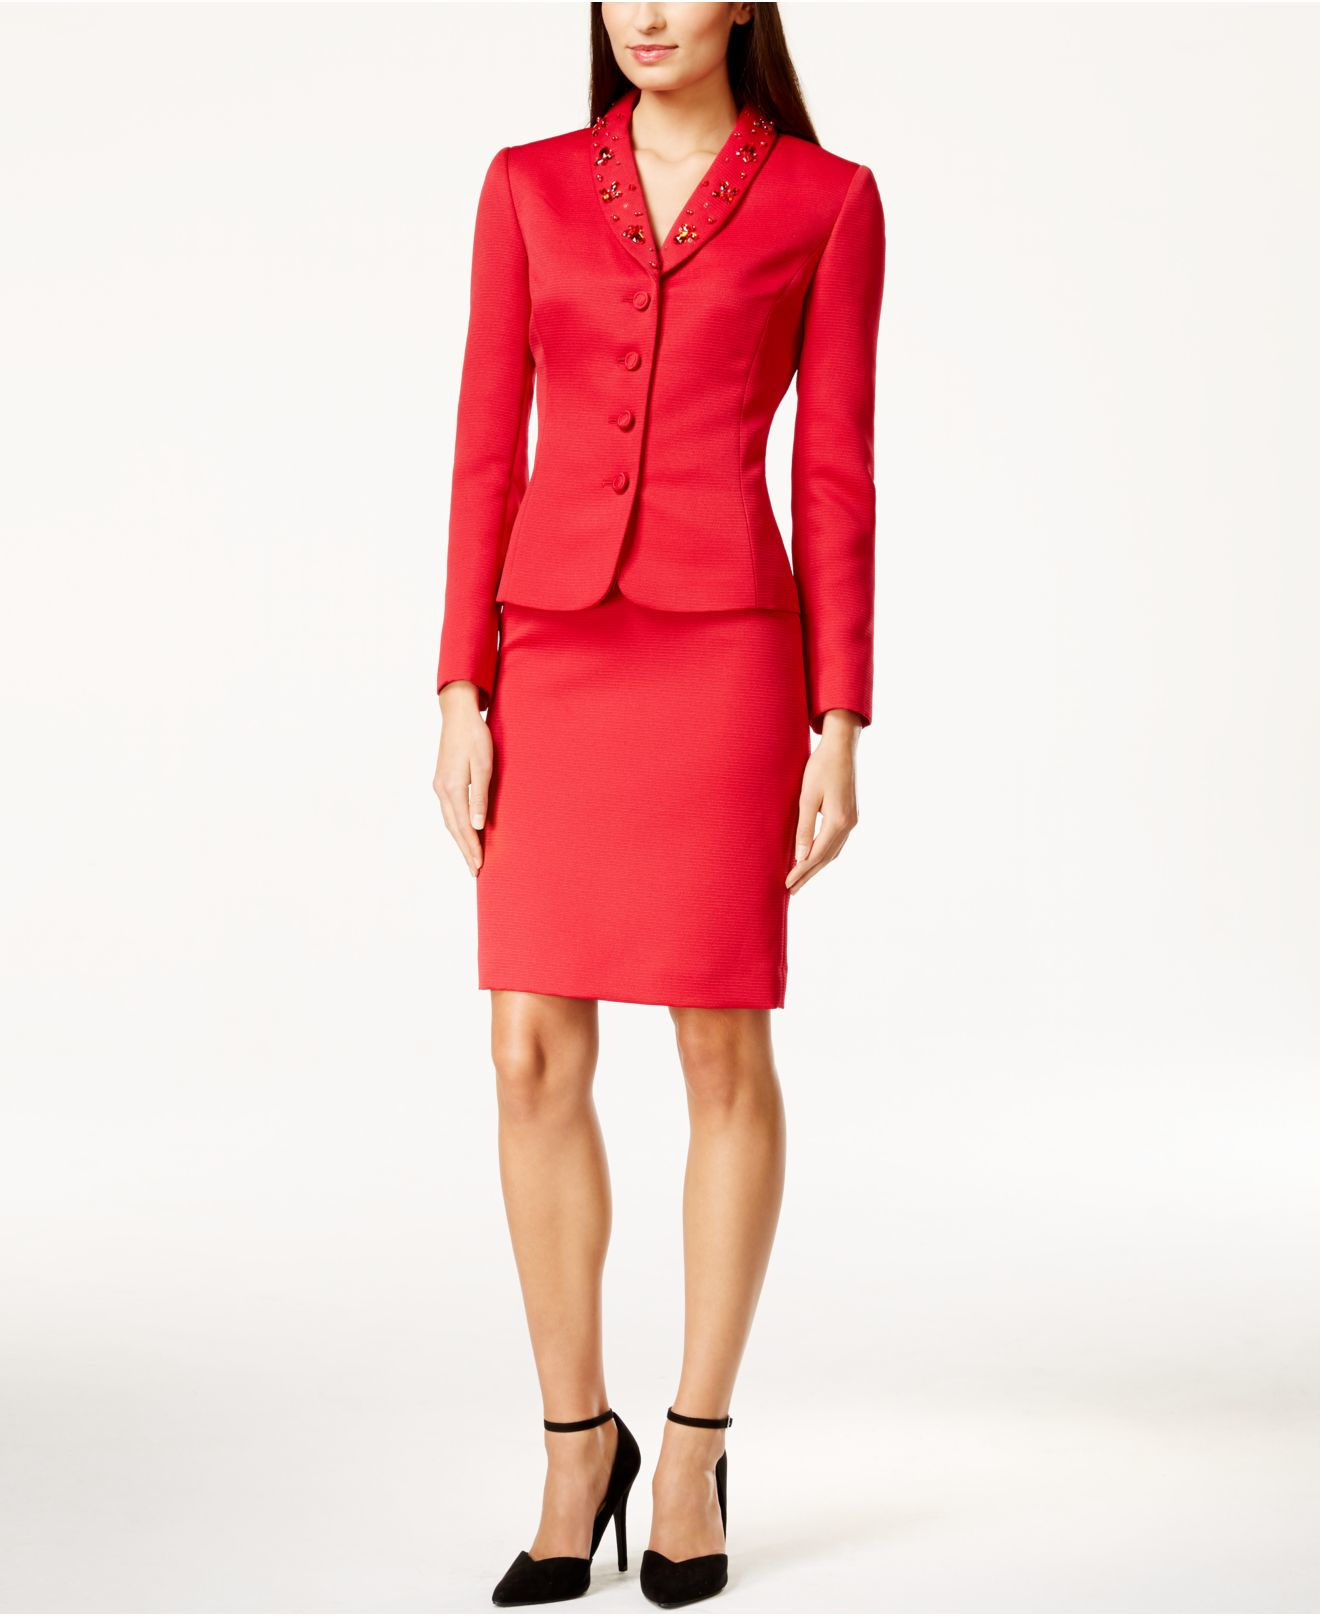 Explore the many Red Suit options, including a Women's Red Suit and a Plus Size Red Suit, at Macy's. Red (46) Customer Ratings Clear. 5 stars (3) 4 stars & up (14) 3 stars & up (16) Price OppoSuits One-Button Printed Skirt Suit.